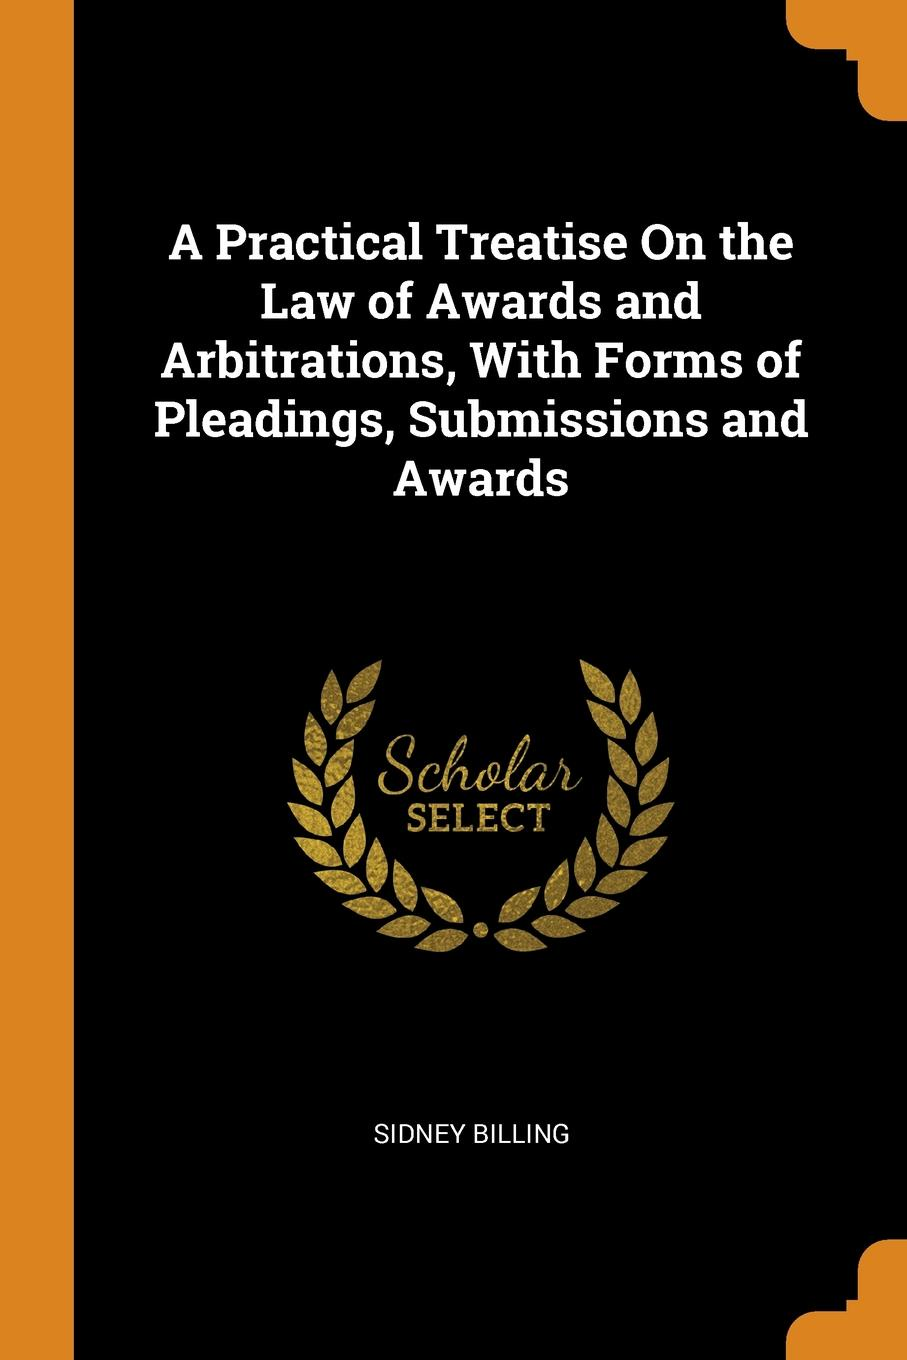 Sidney Billing. A Practical Treatise On the Law of Awards and Arbitrations, With Forms of Pleadings, Submissions and Awards